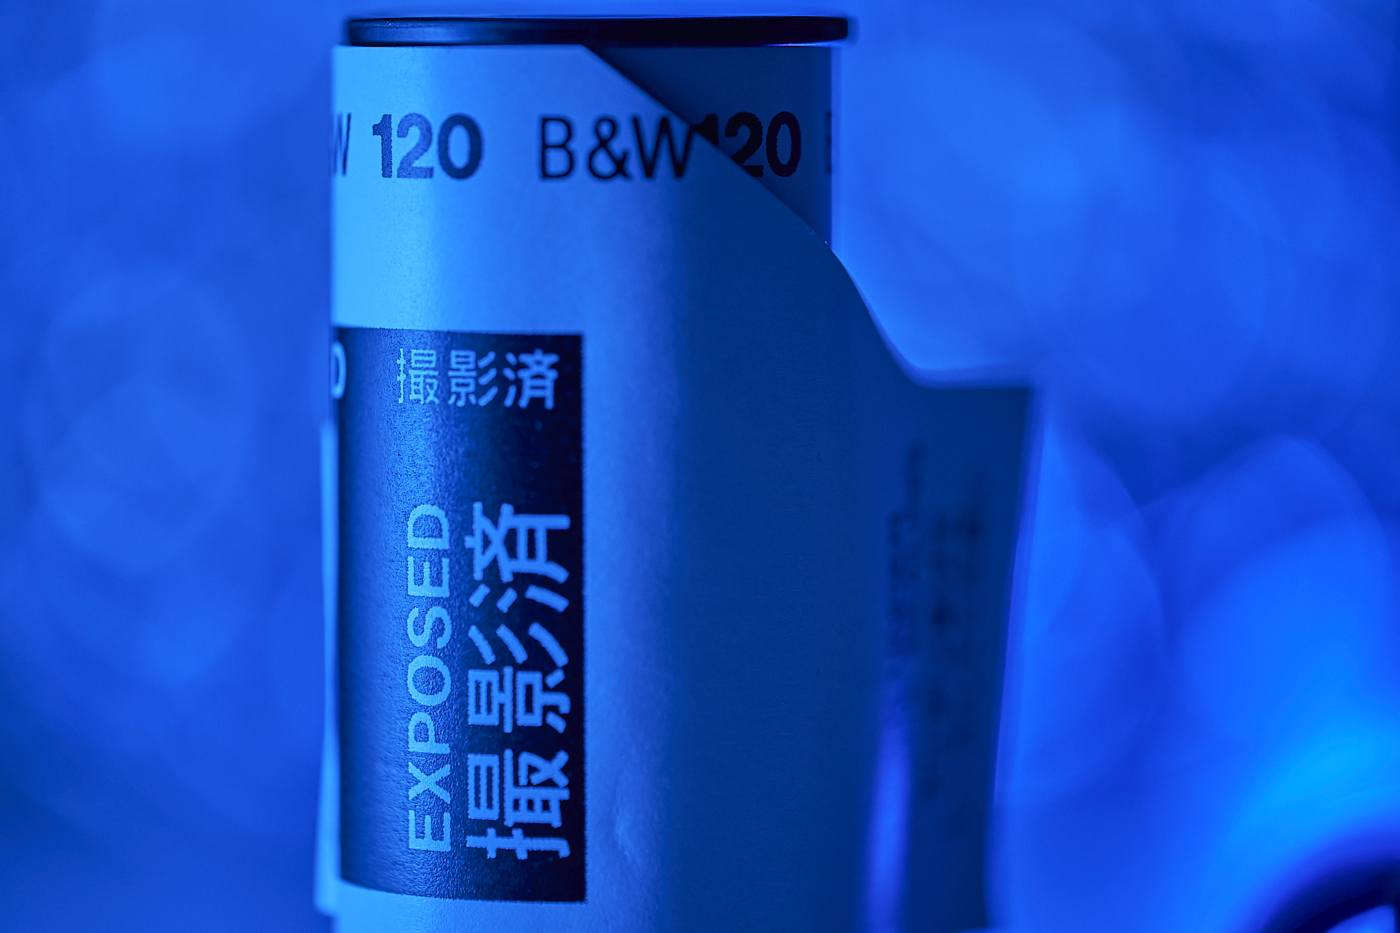 120 B&W film in blue